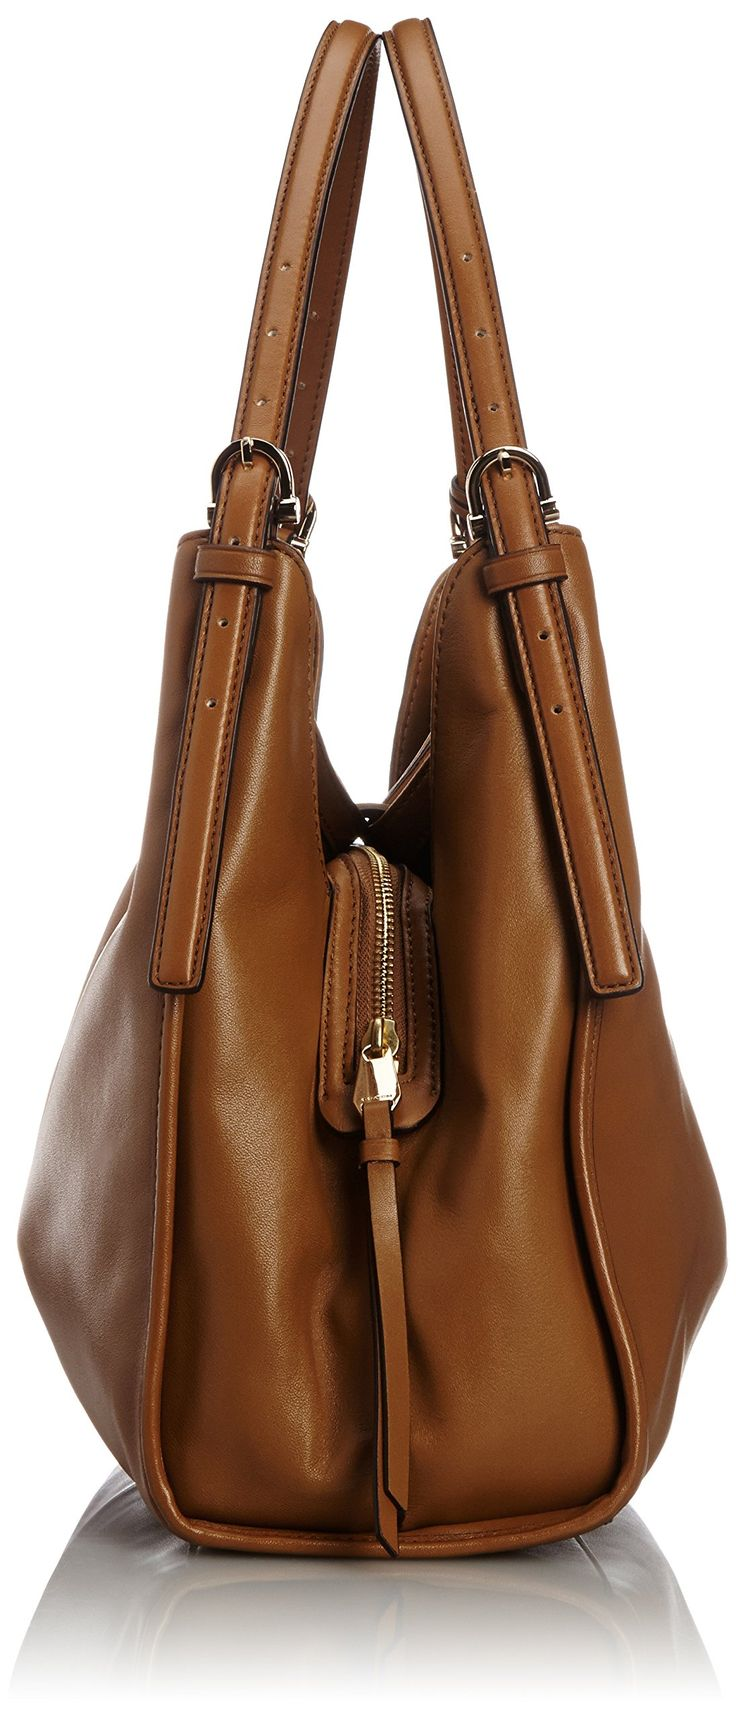 COACH 32221 Madison Carlyle Leather Shoulder Bag in Brindle Brown Gold: Handbags: Amazon.com